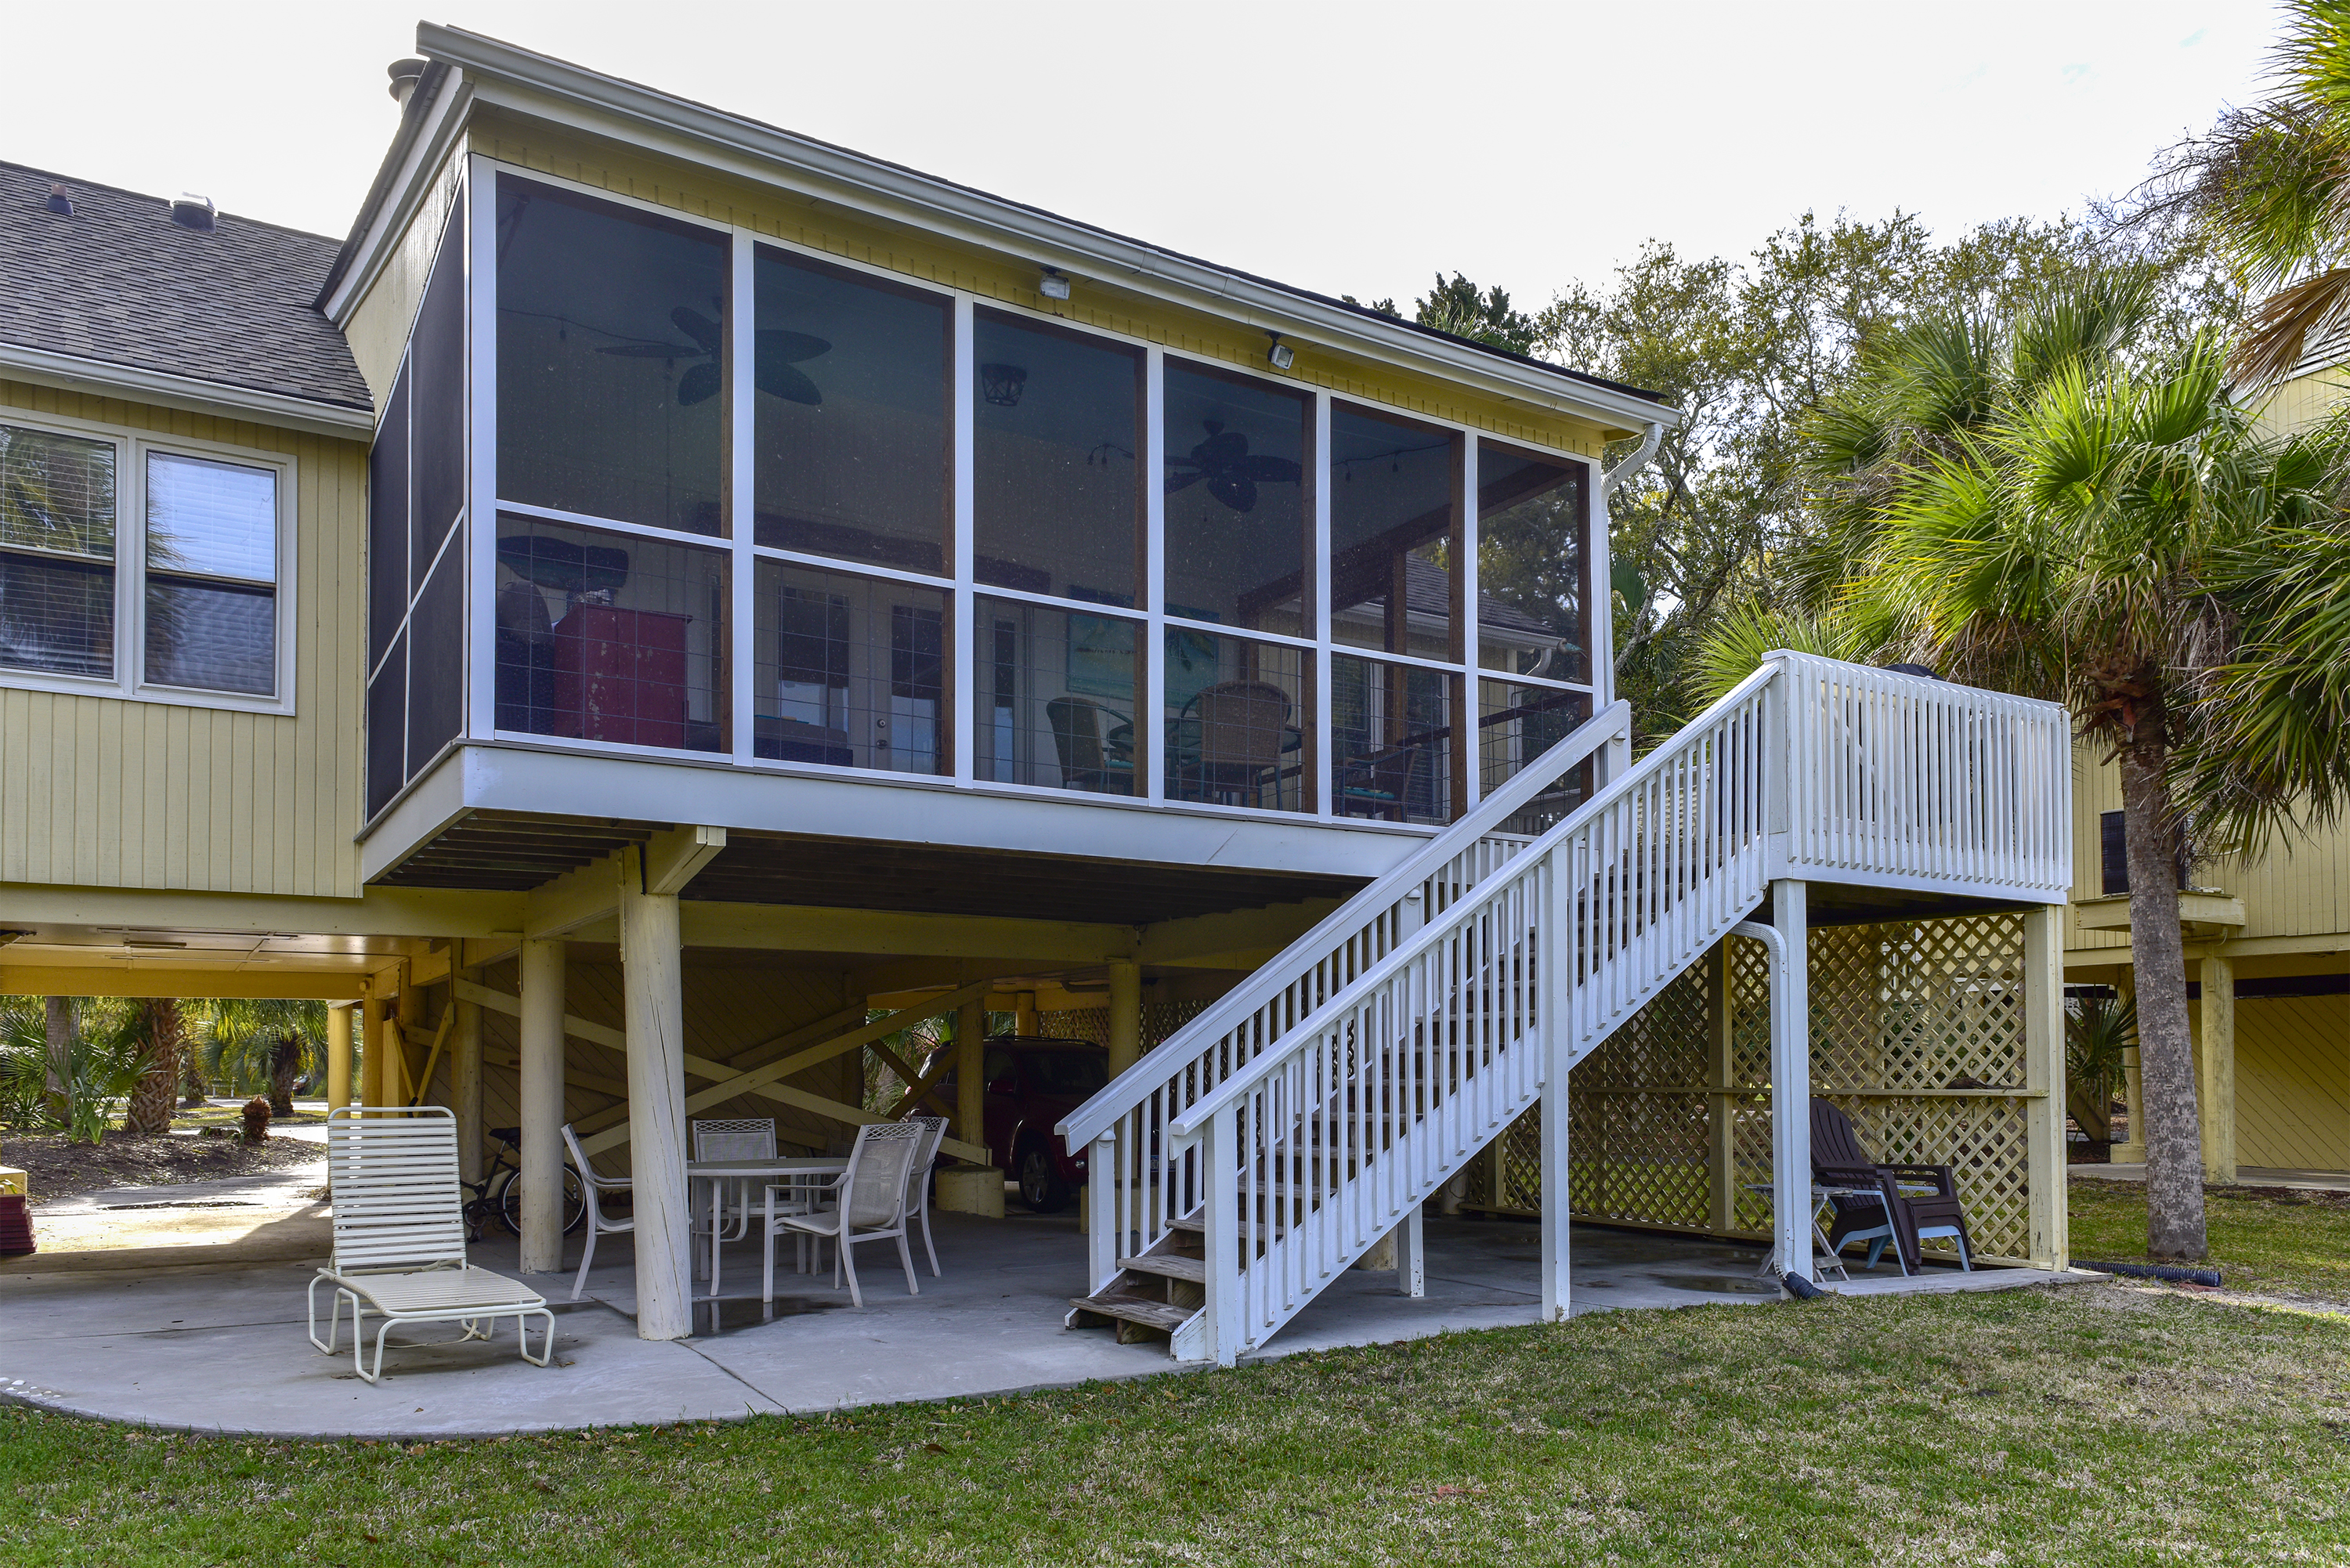 Your Tarpon Pond rear exterior showcases the screen porch and patio area.